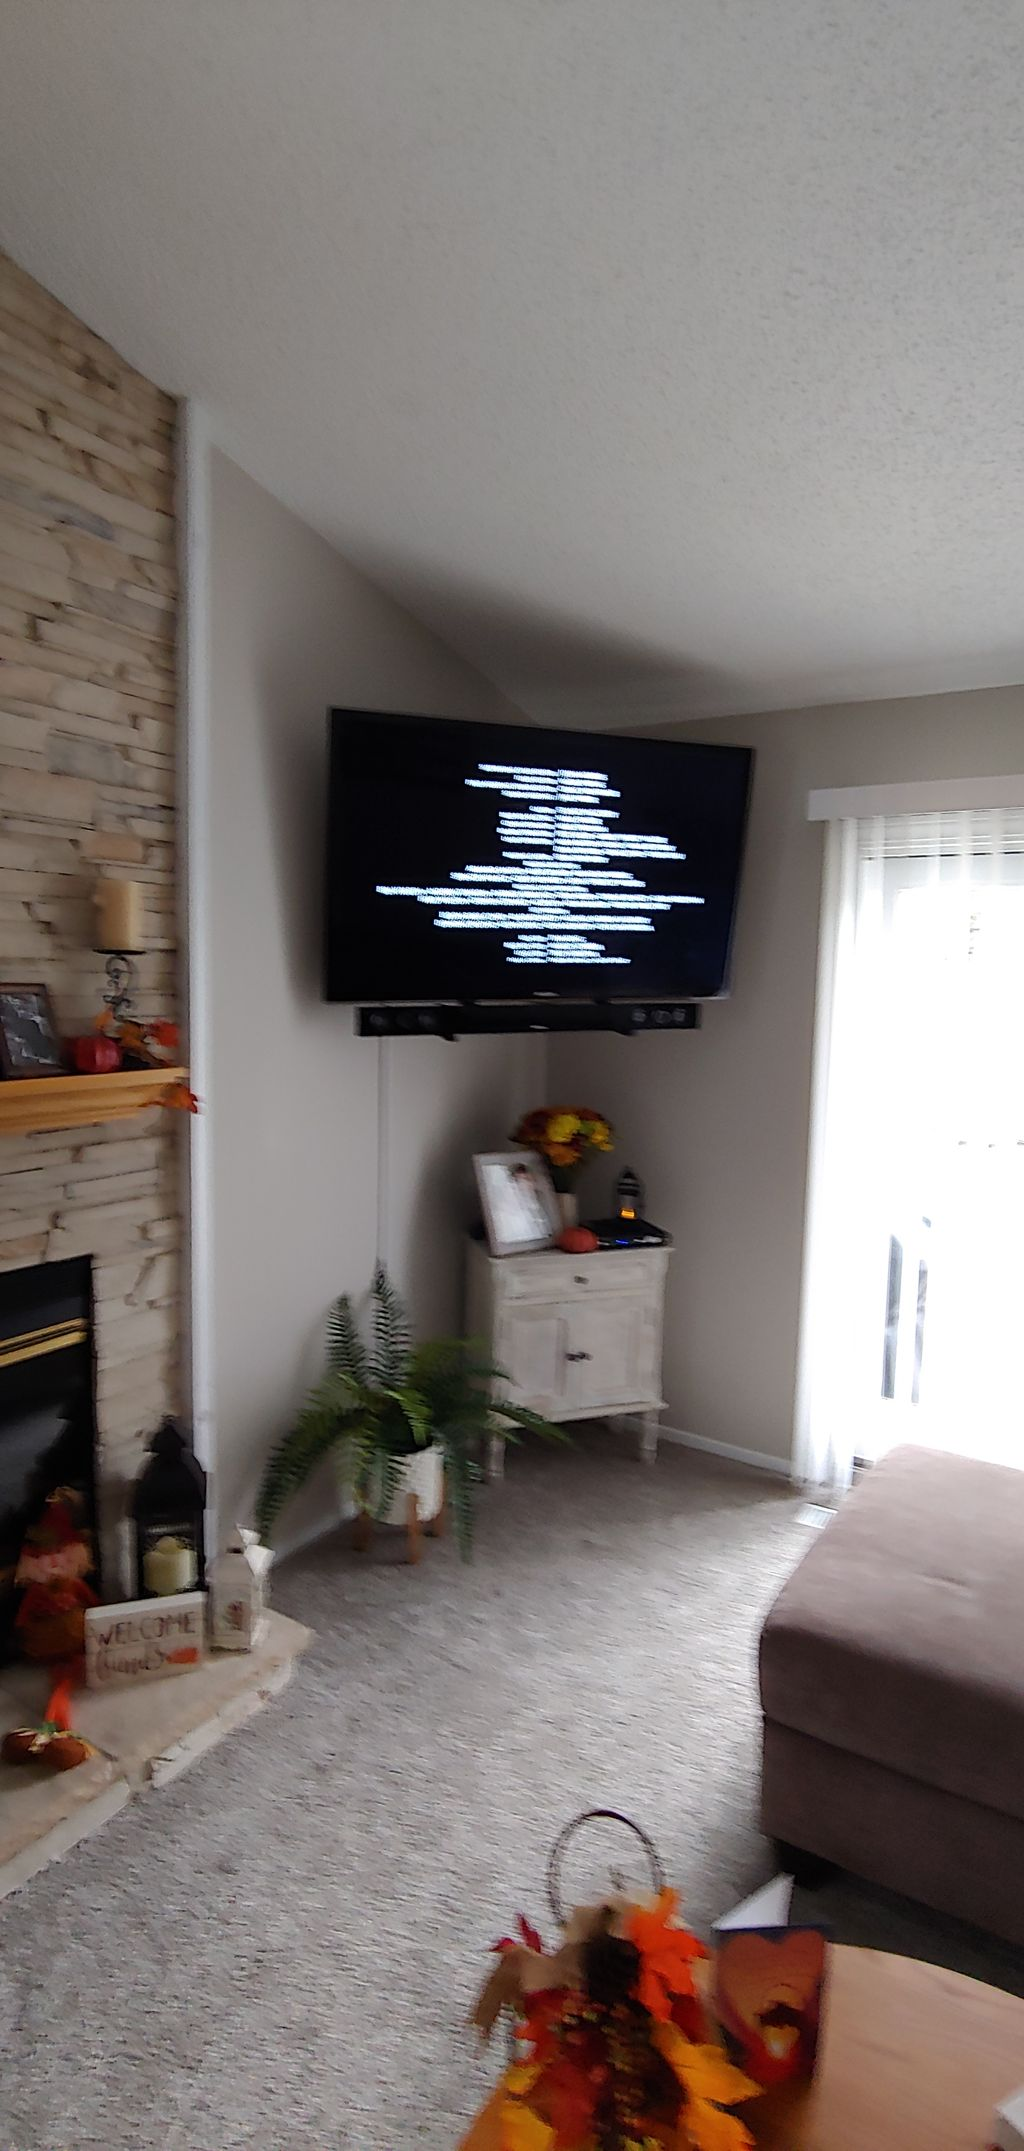 Tv mountings Over the wall wire channel